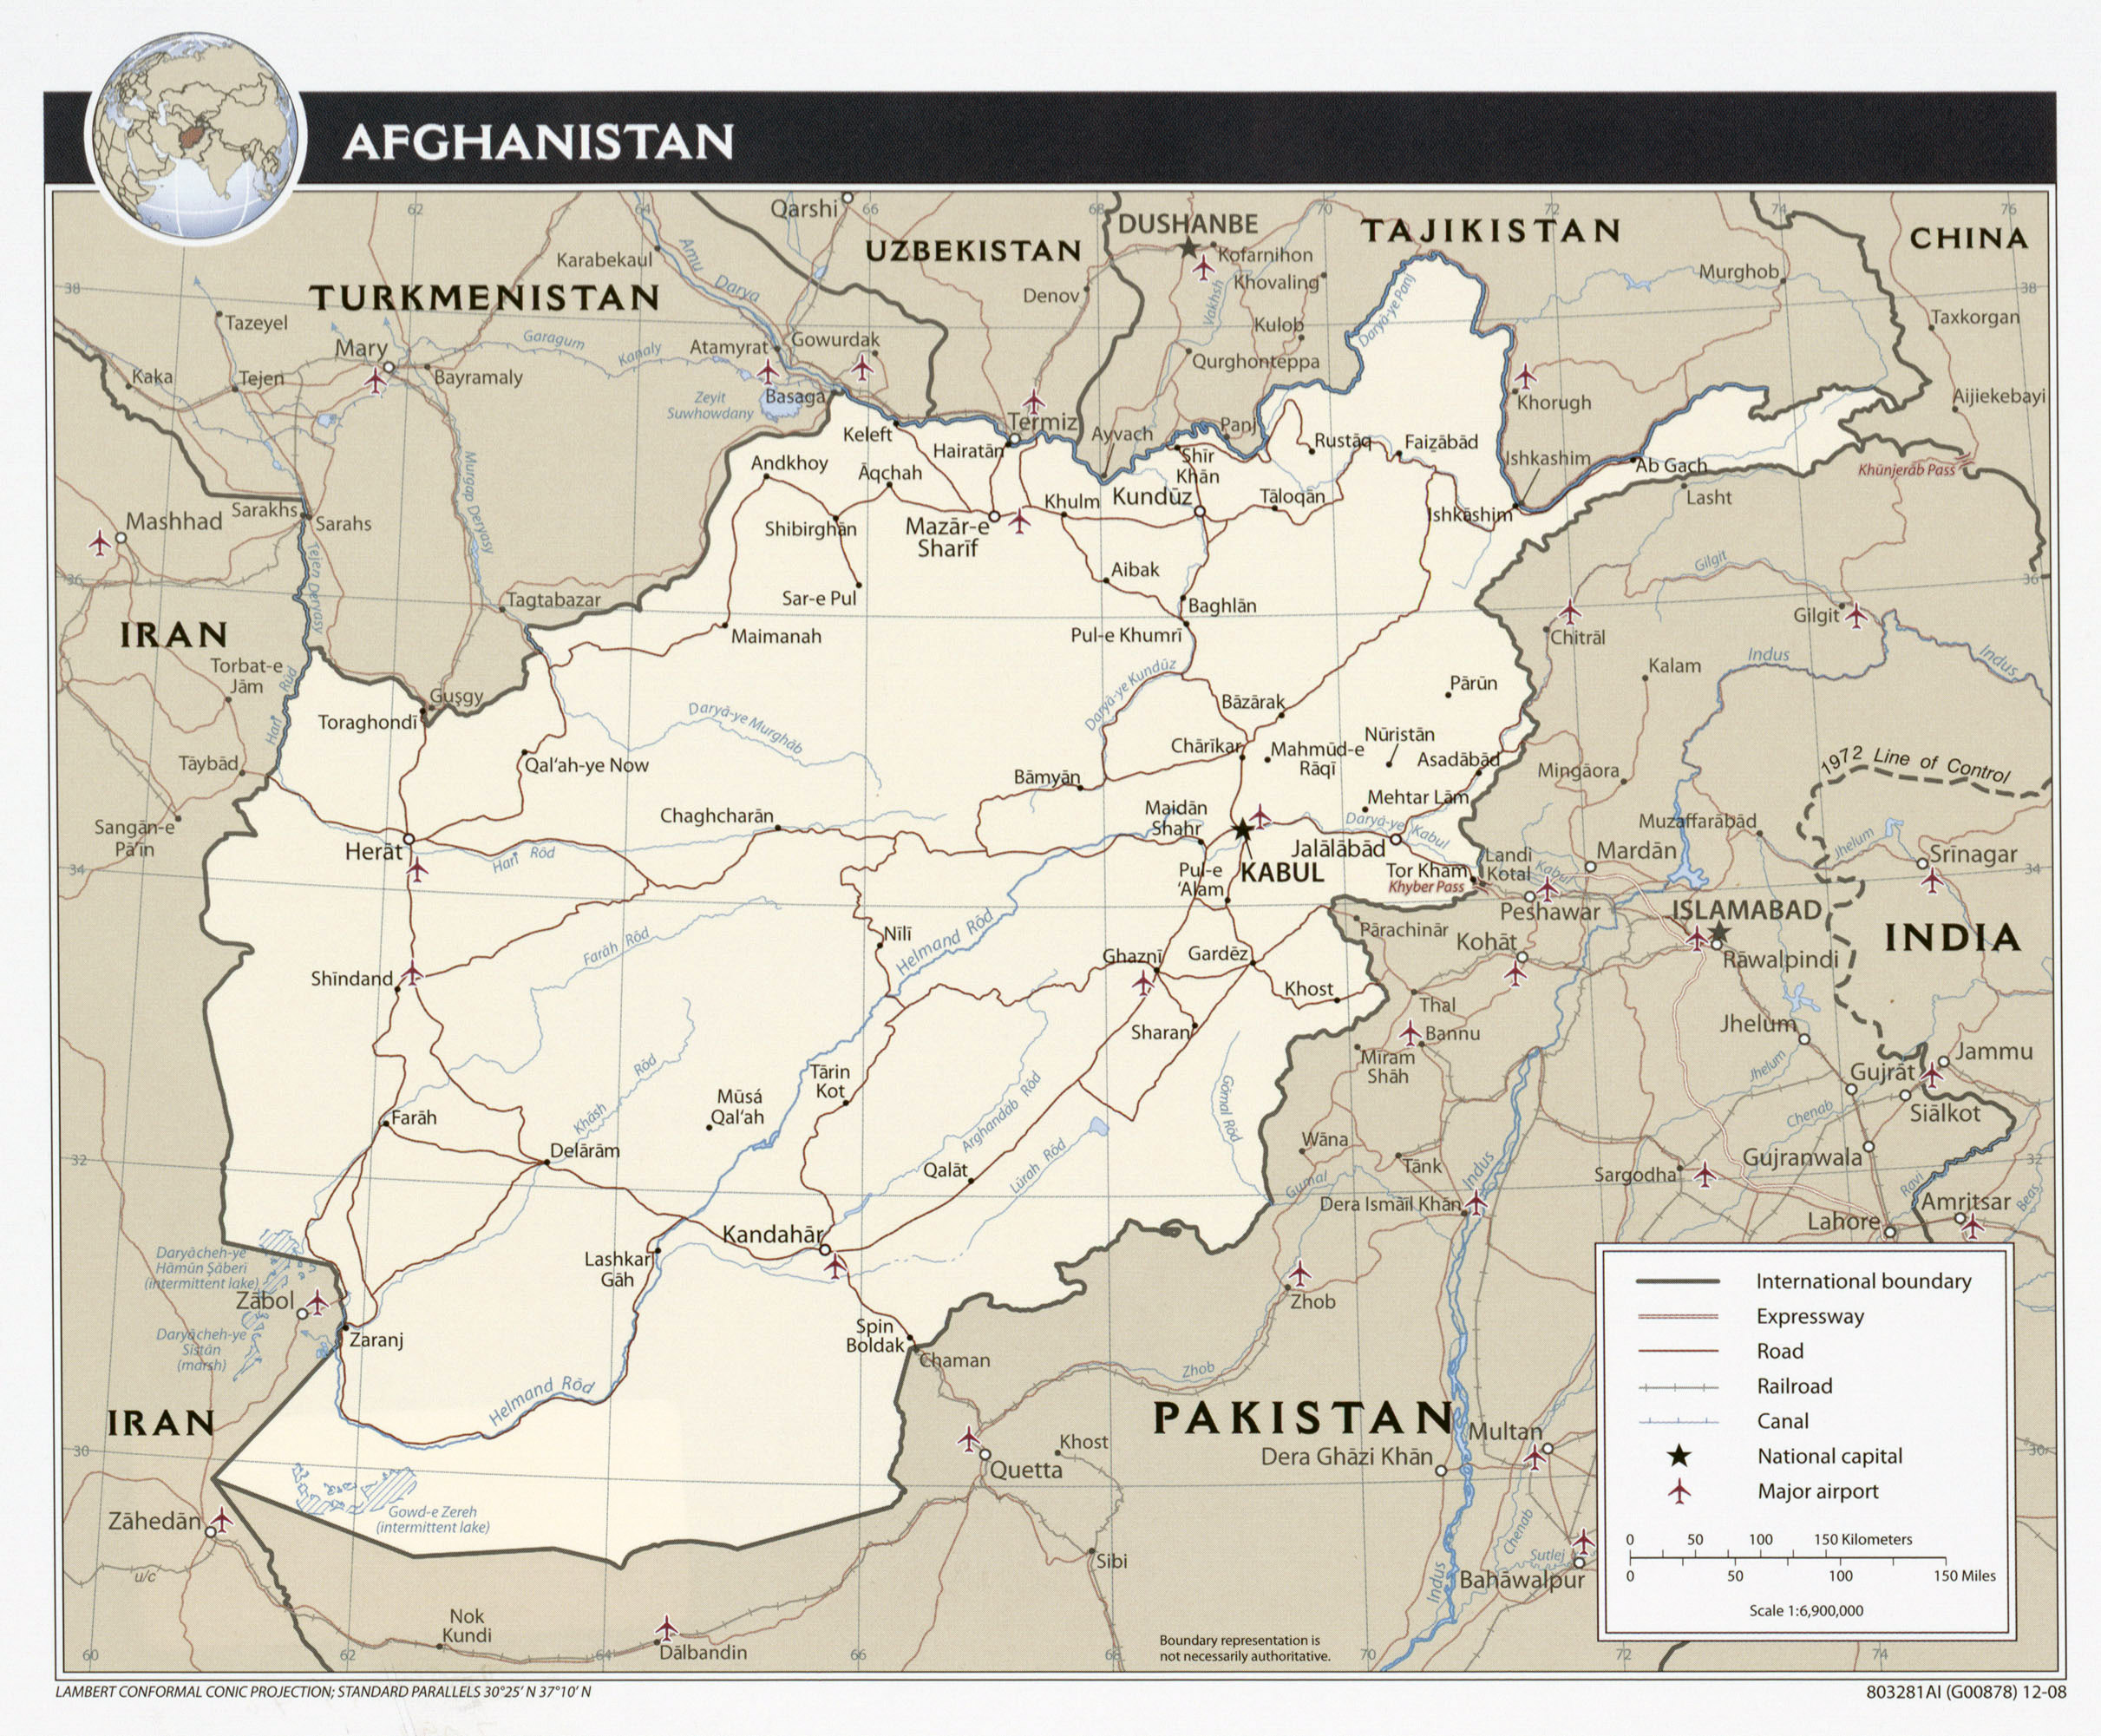 Maps of afghanistan detailed map of afghanistan in english large detailed political map of afghanistan with roads airports and major cities 2008 gumiabroncs Choice Image